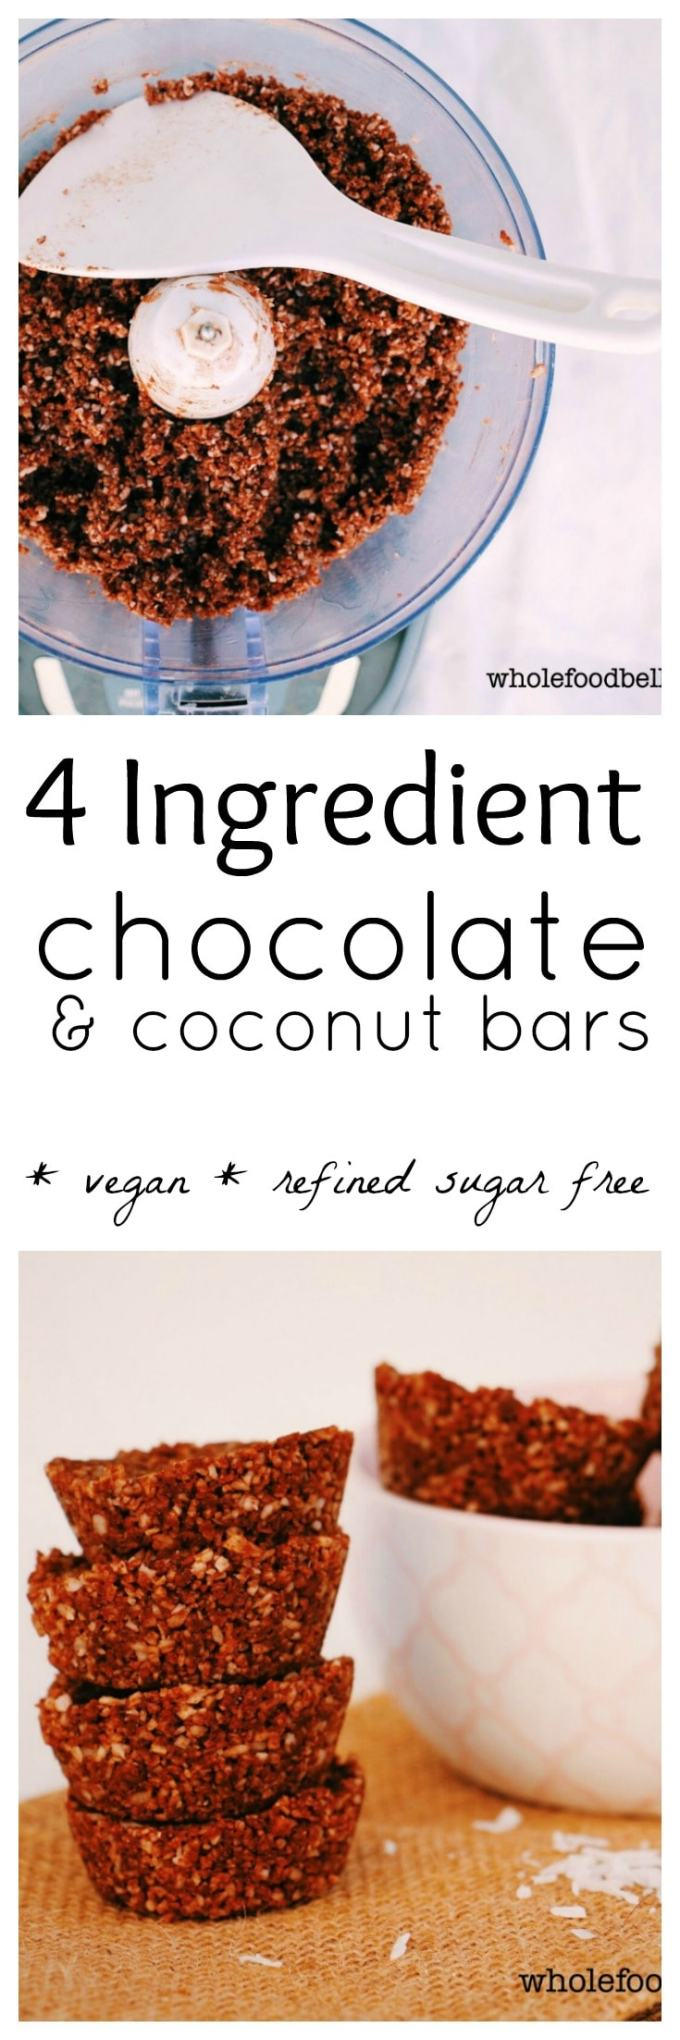 Chocolate Coconut Roughs: crumble them on ice cream or oats or pop them in the blender with some milk for a sweet drink. 4 ingredients and 5 minutes prep.